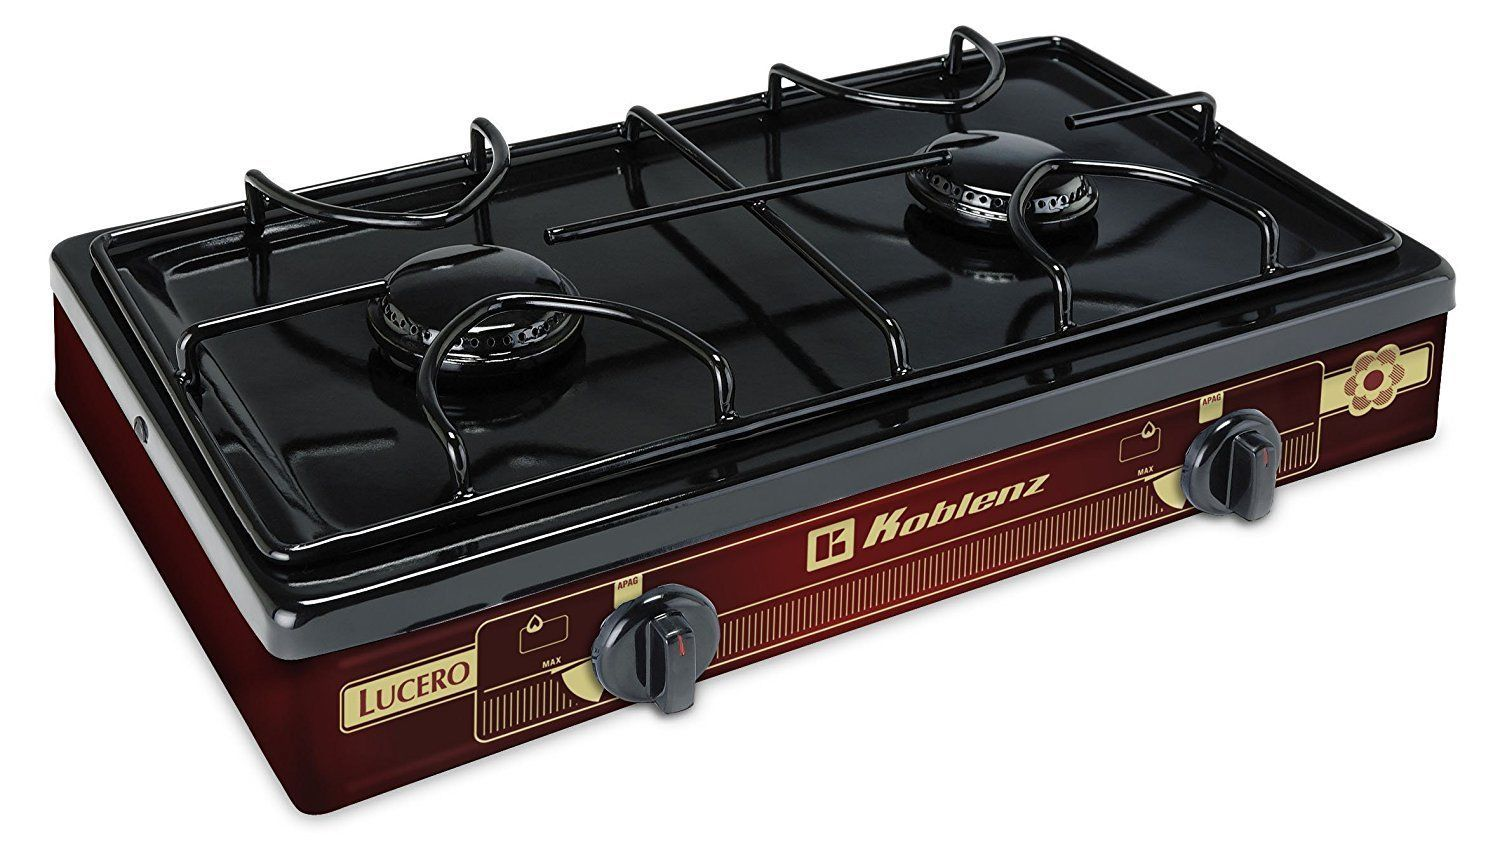 Portable Propane Gas Stove Cooktop Outdoor Hiking Travel Camping 2 Burner Cooker